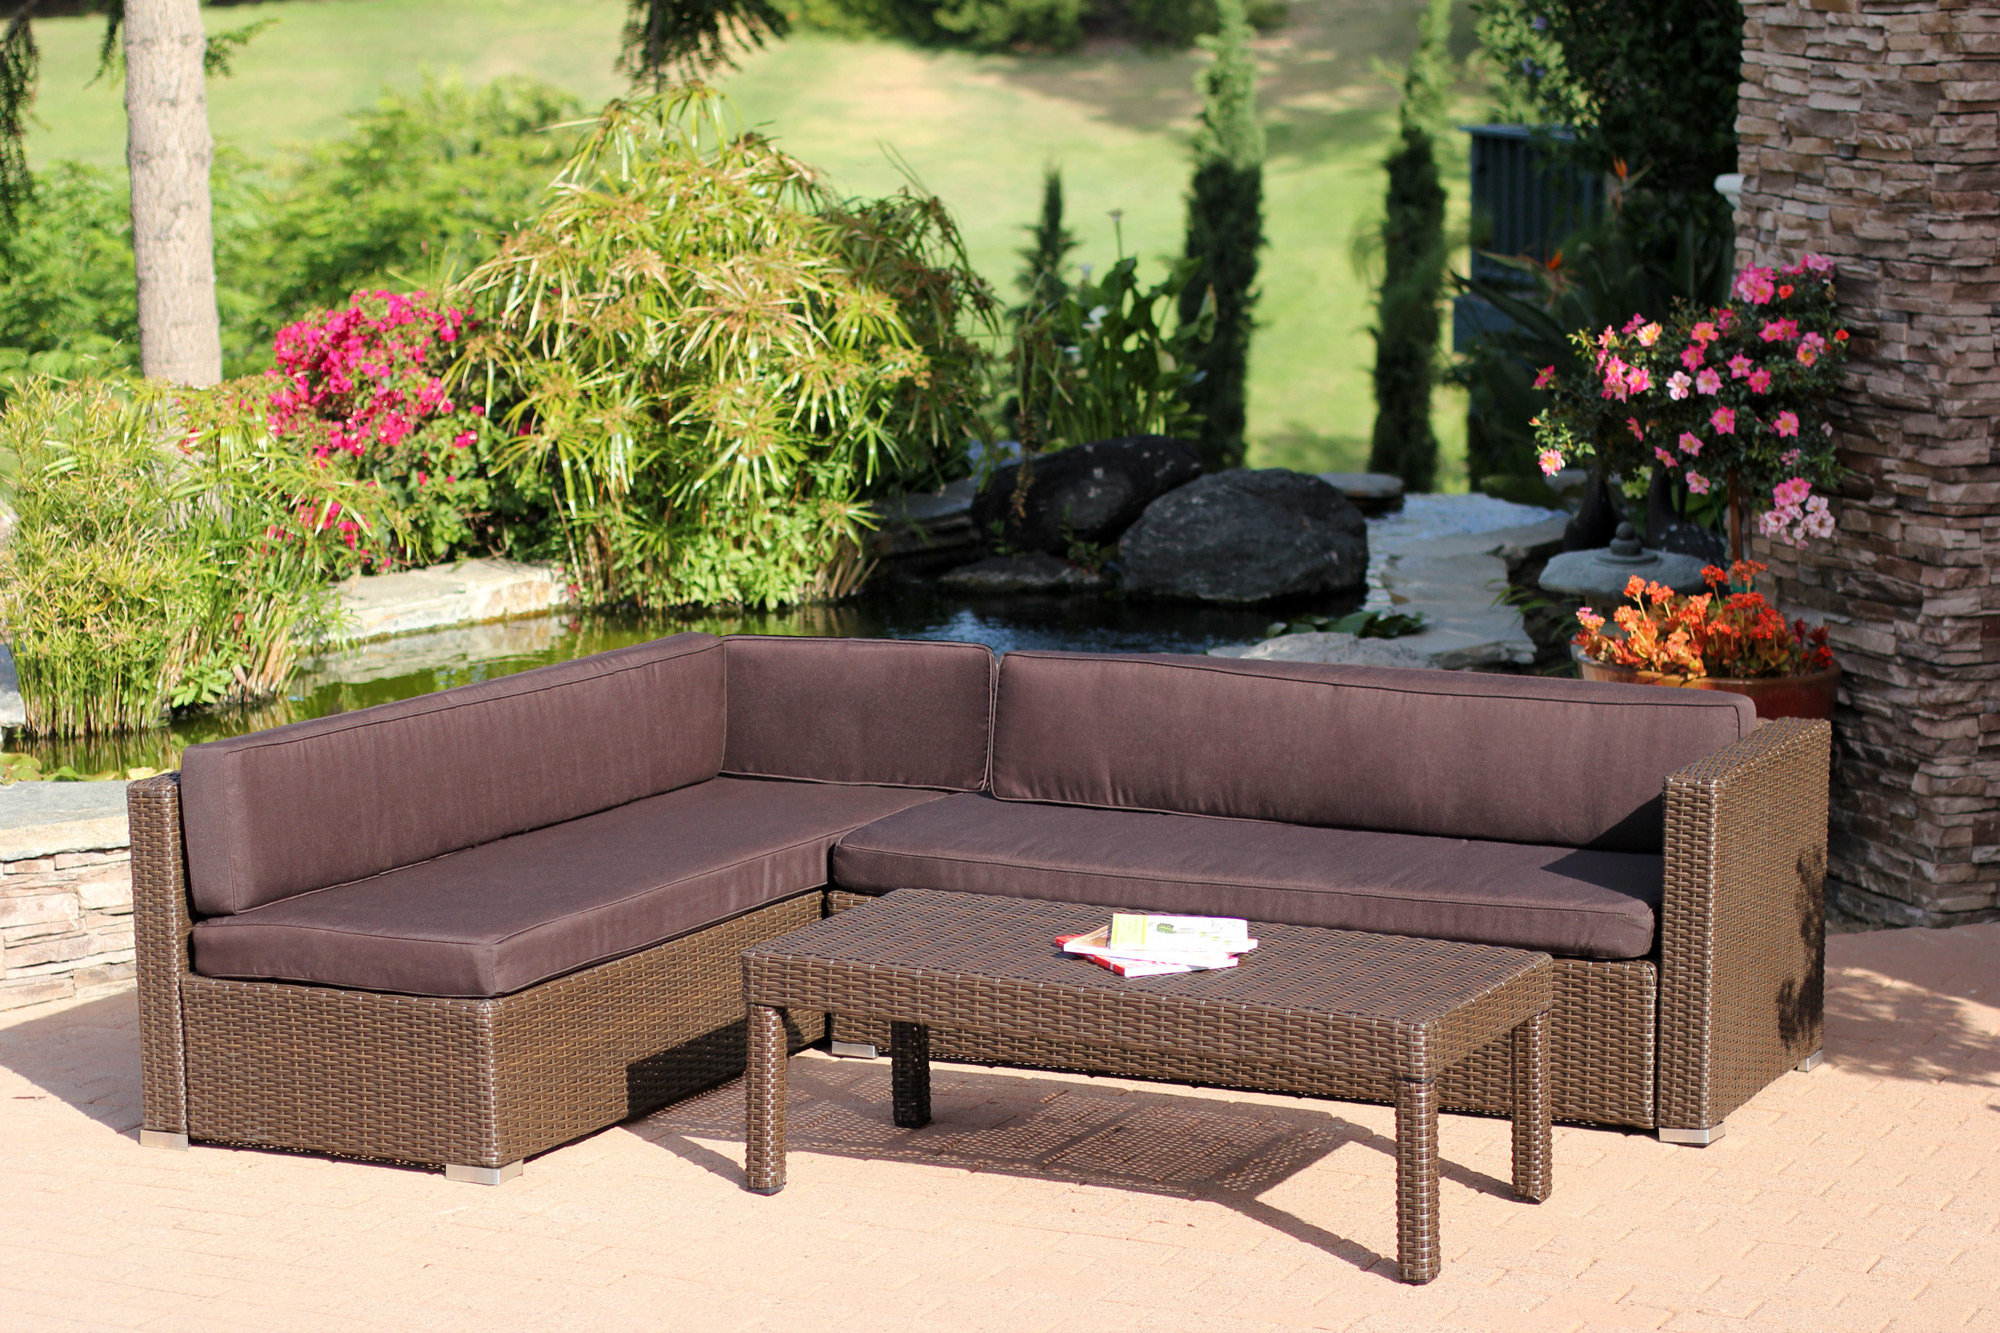 Larsen Patio Sectionals With Cushions Intended For Trendy Totnes 3 Piece Sectional Set With Cushions (View 12 of 20)